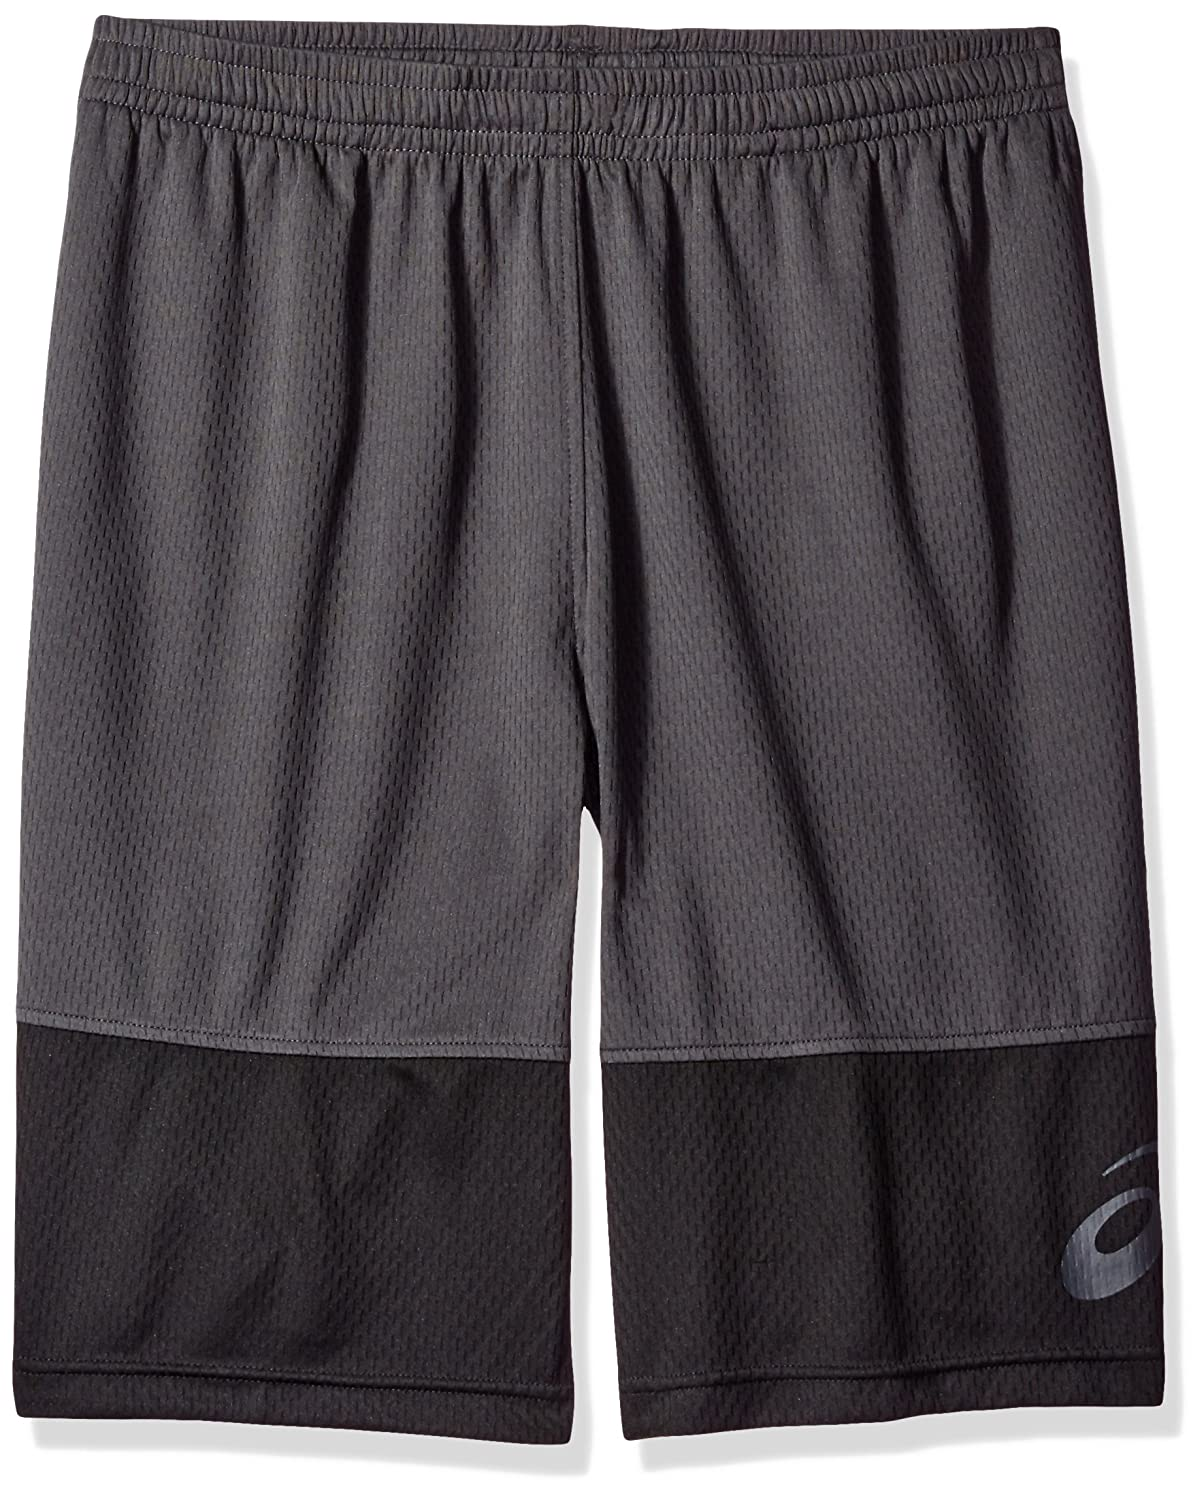 Asics Men's Big & Tall Tiebreaker Short Asics Mens Athletic MS0902CW